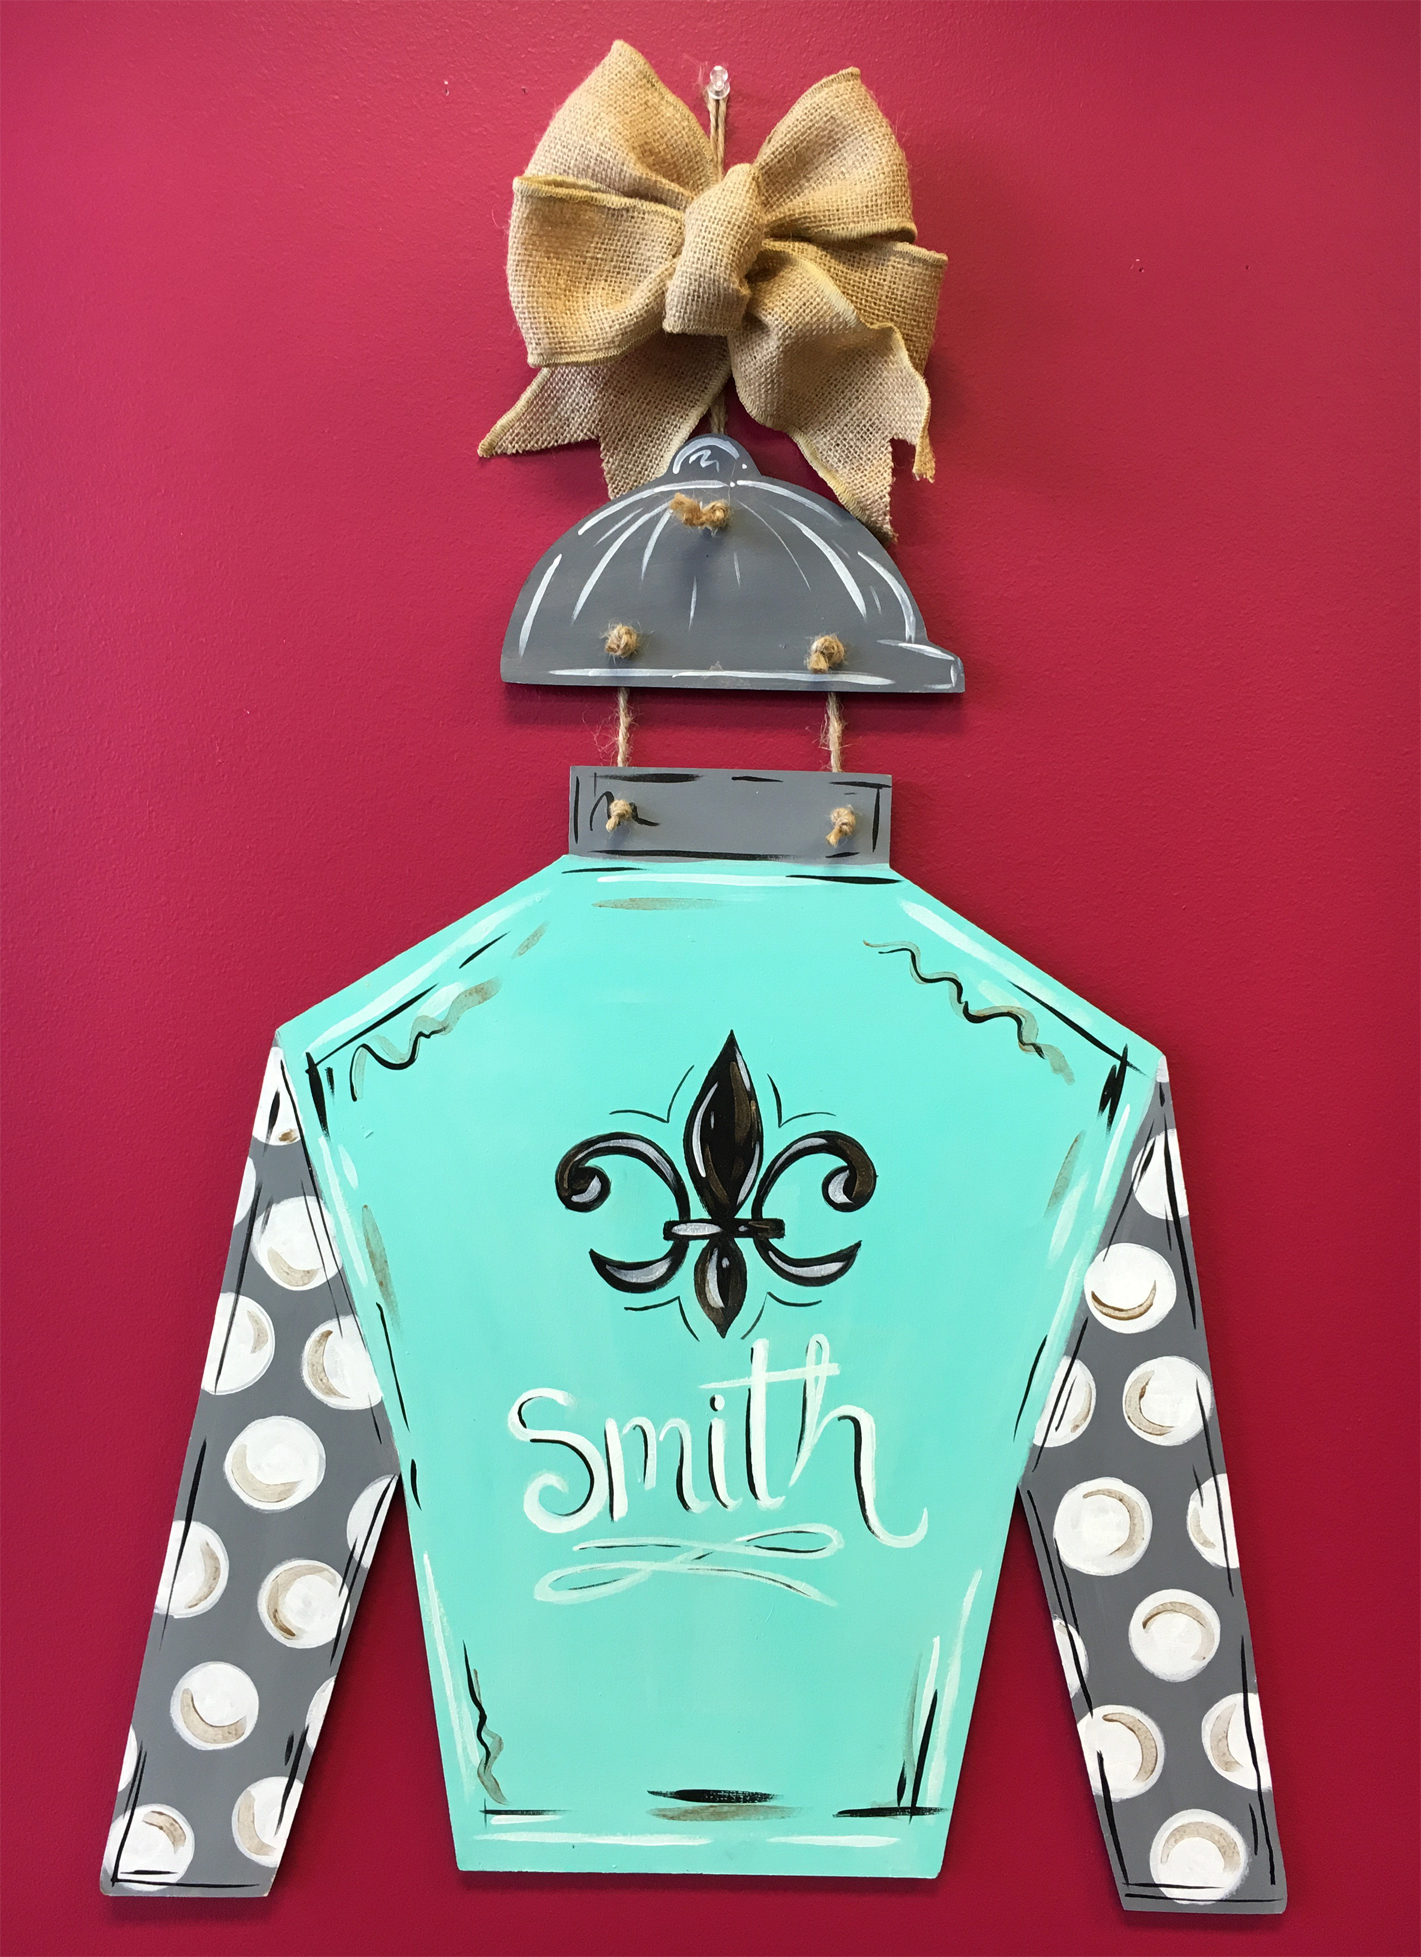 Custom door hanger jockey silk thu apr 06 7pm at st for Paint and sip louisville co